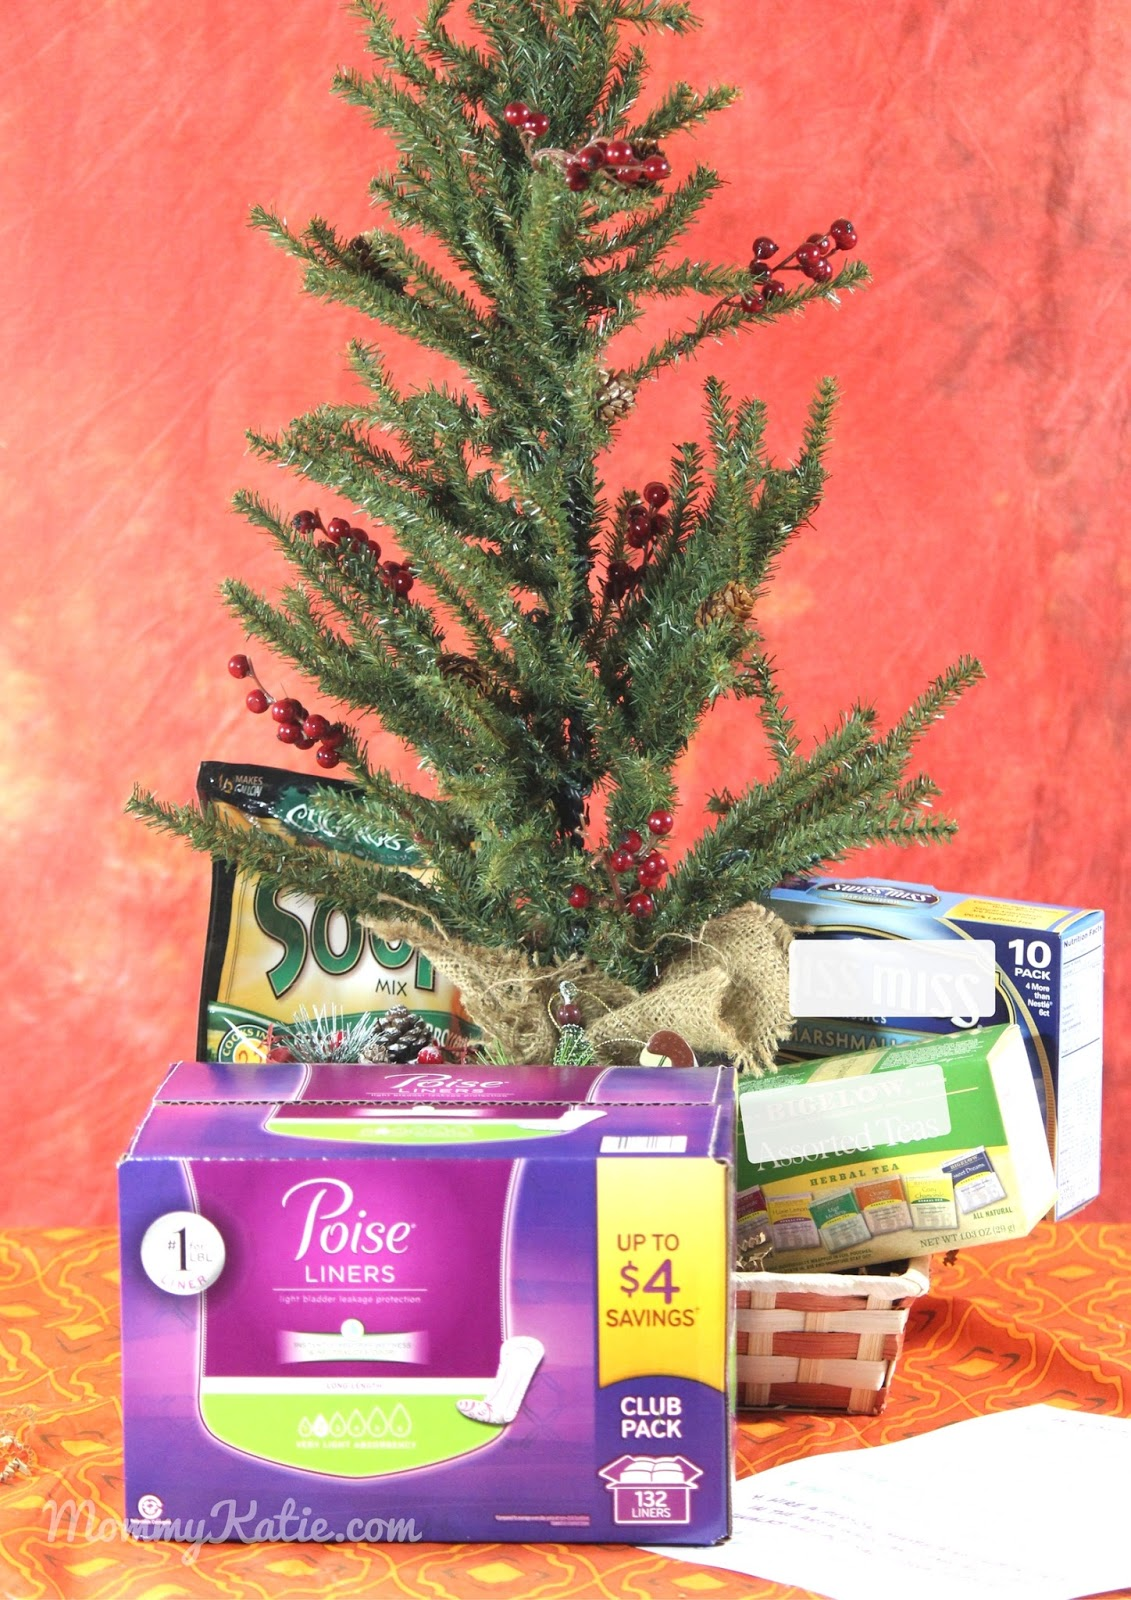 Poise At Sams Club And A Winter Checklist For Caregivers Mommy Katie